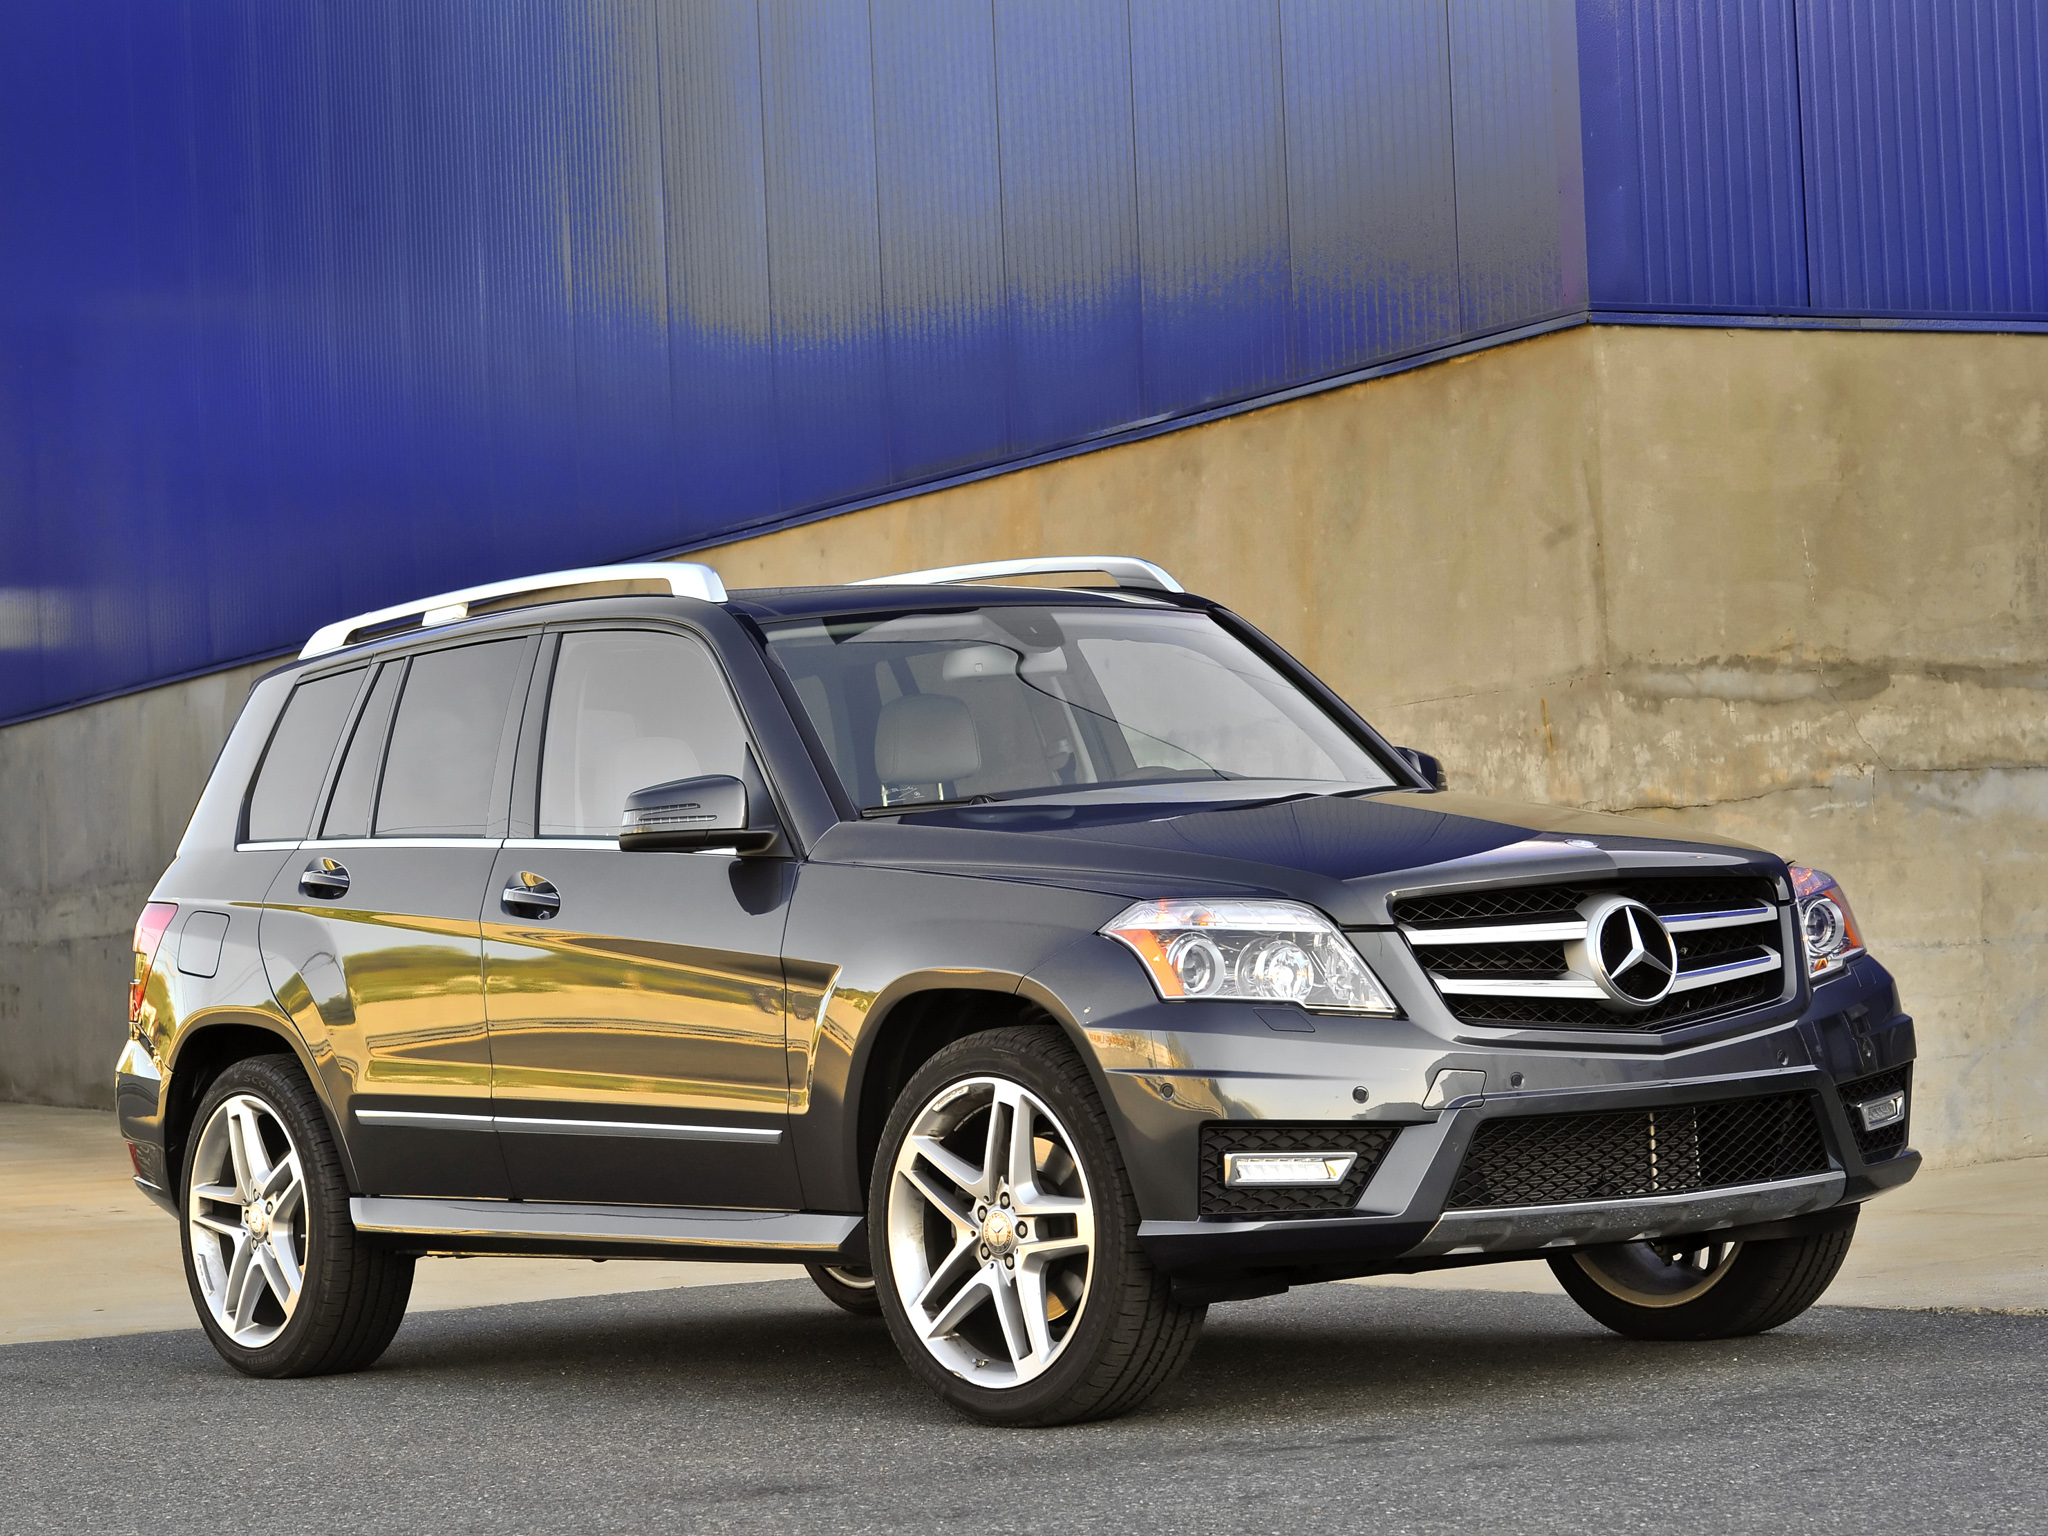 Mercedes benz glk amg picture 90364 mercedes benz for Mercedes benz glk350 amg